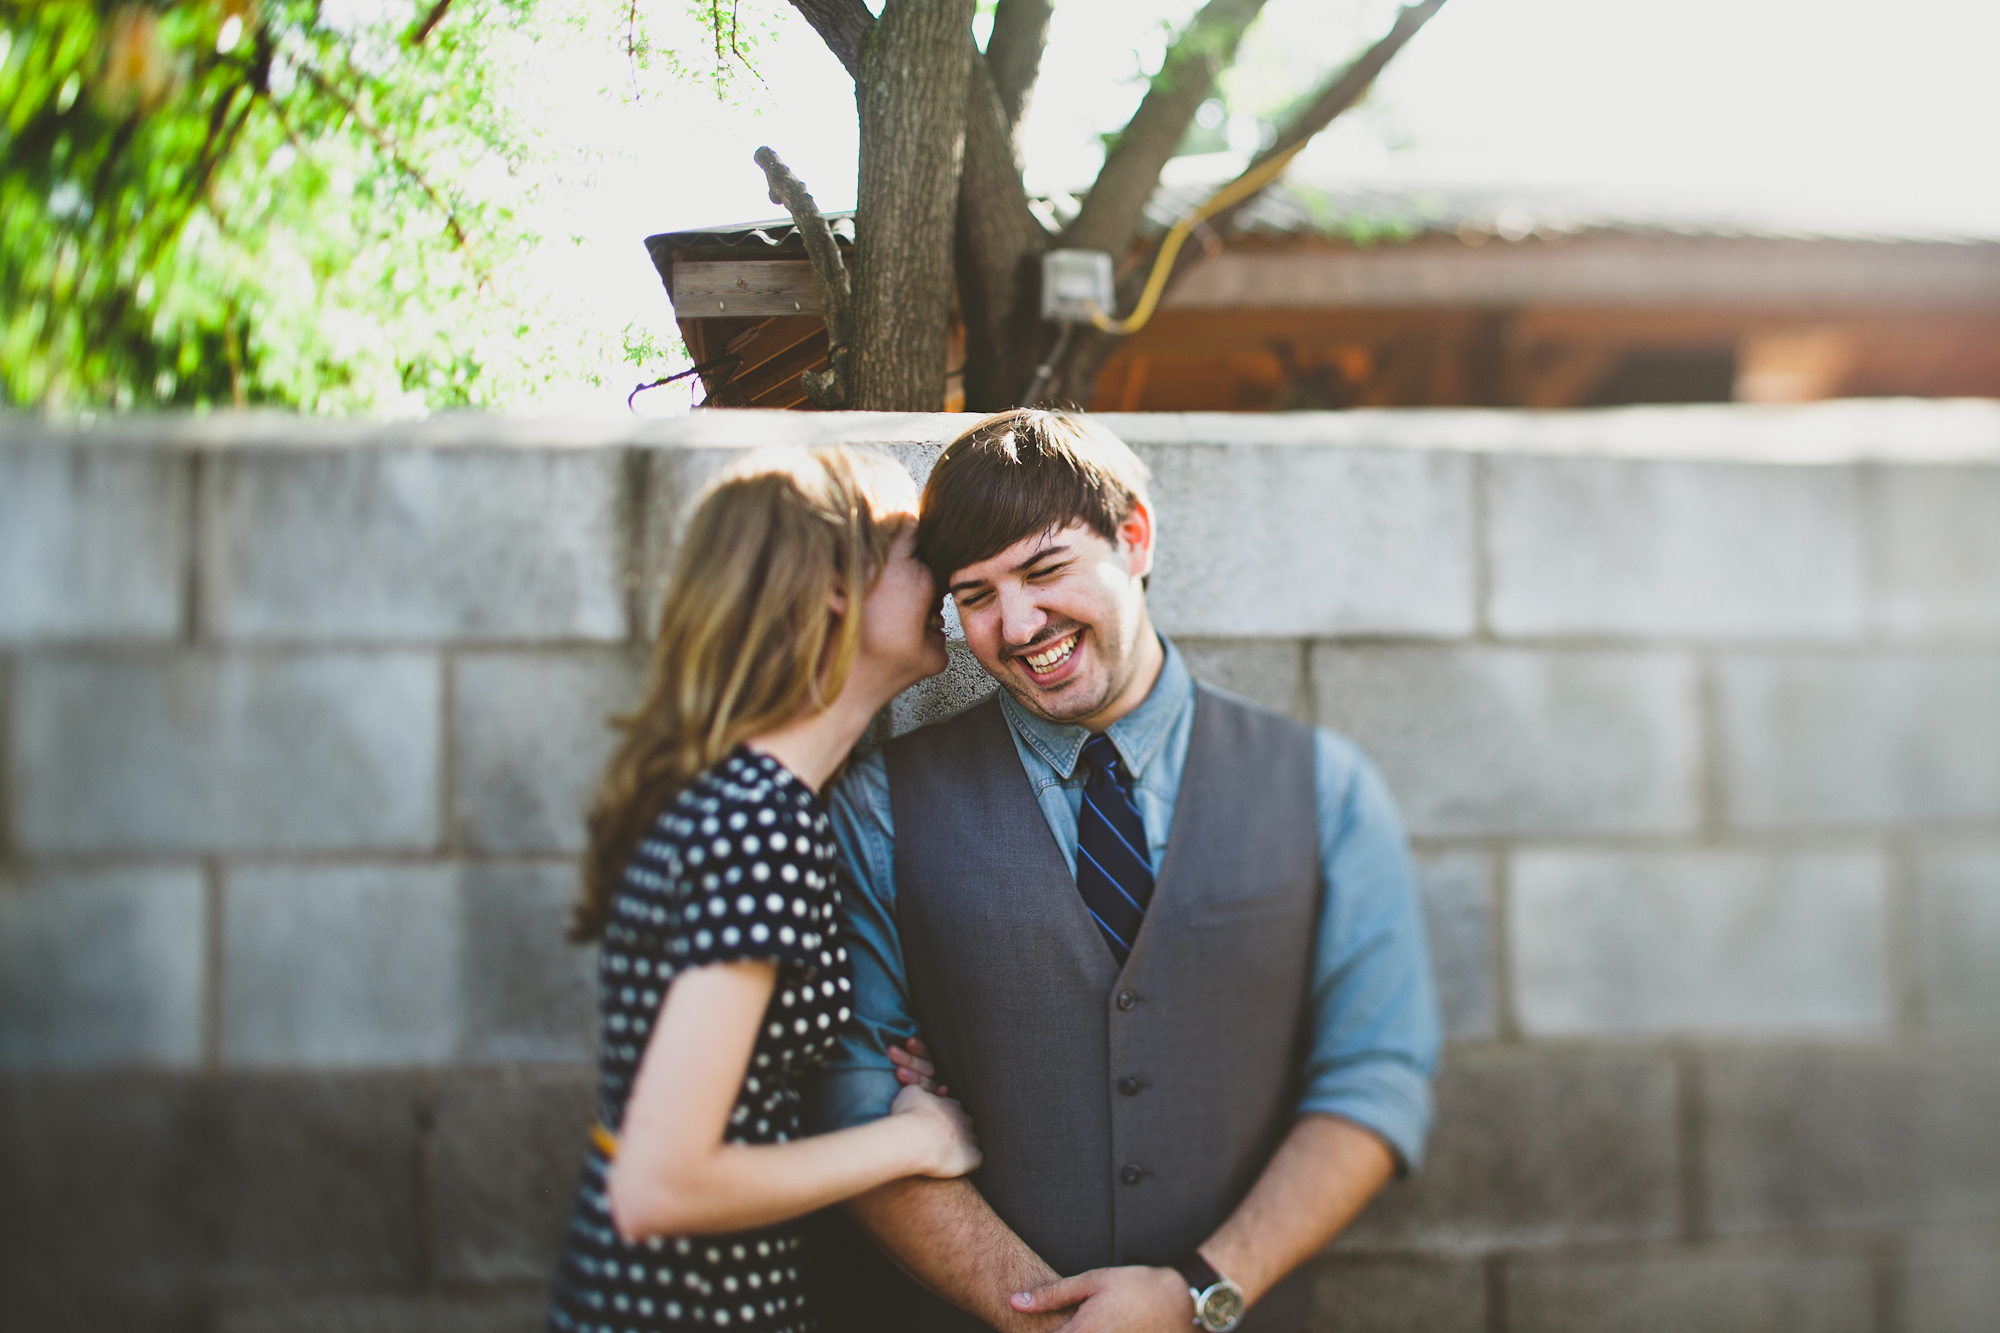 EmilyChidesterPhotography_Jena&Josh_Charlotte_NorthDavidson_Engagement-71